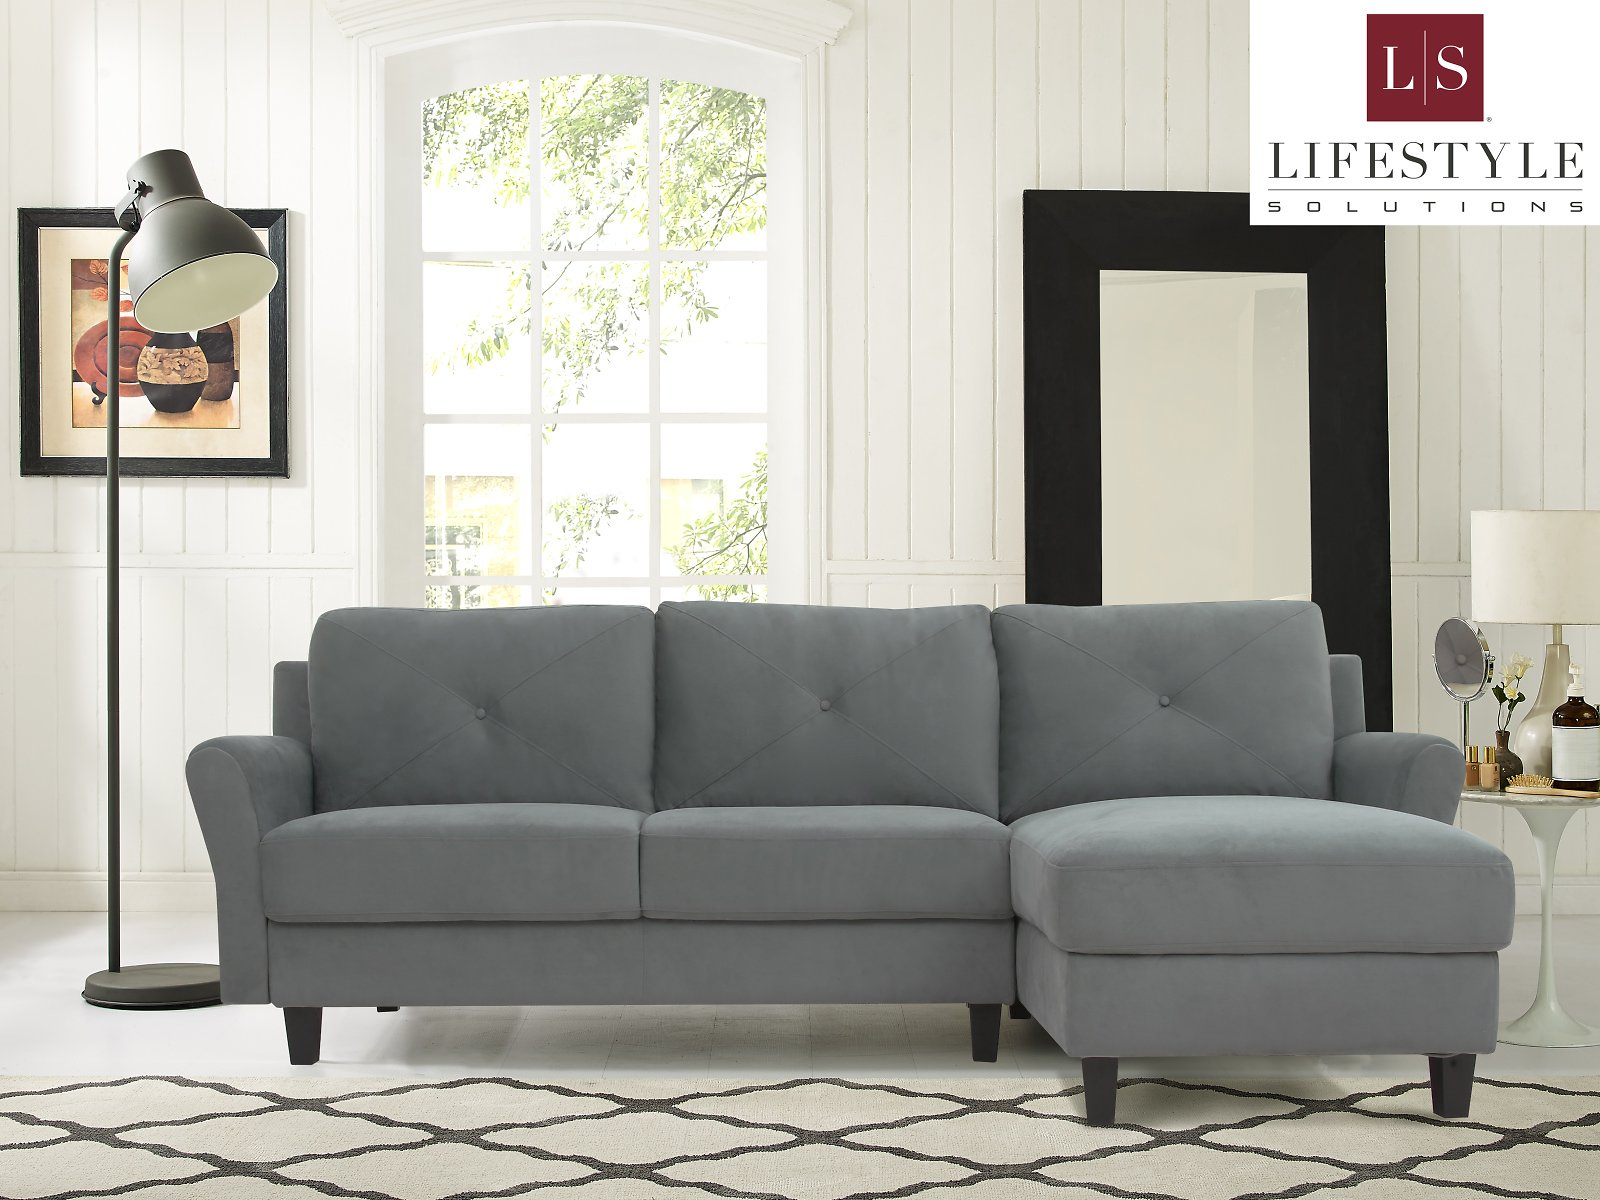 Lifestyle Solutions Taryn 3 Seat Sectional Sofa